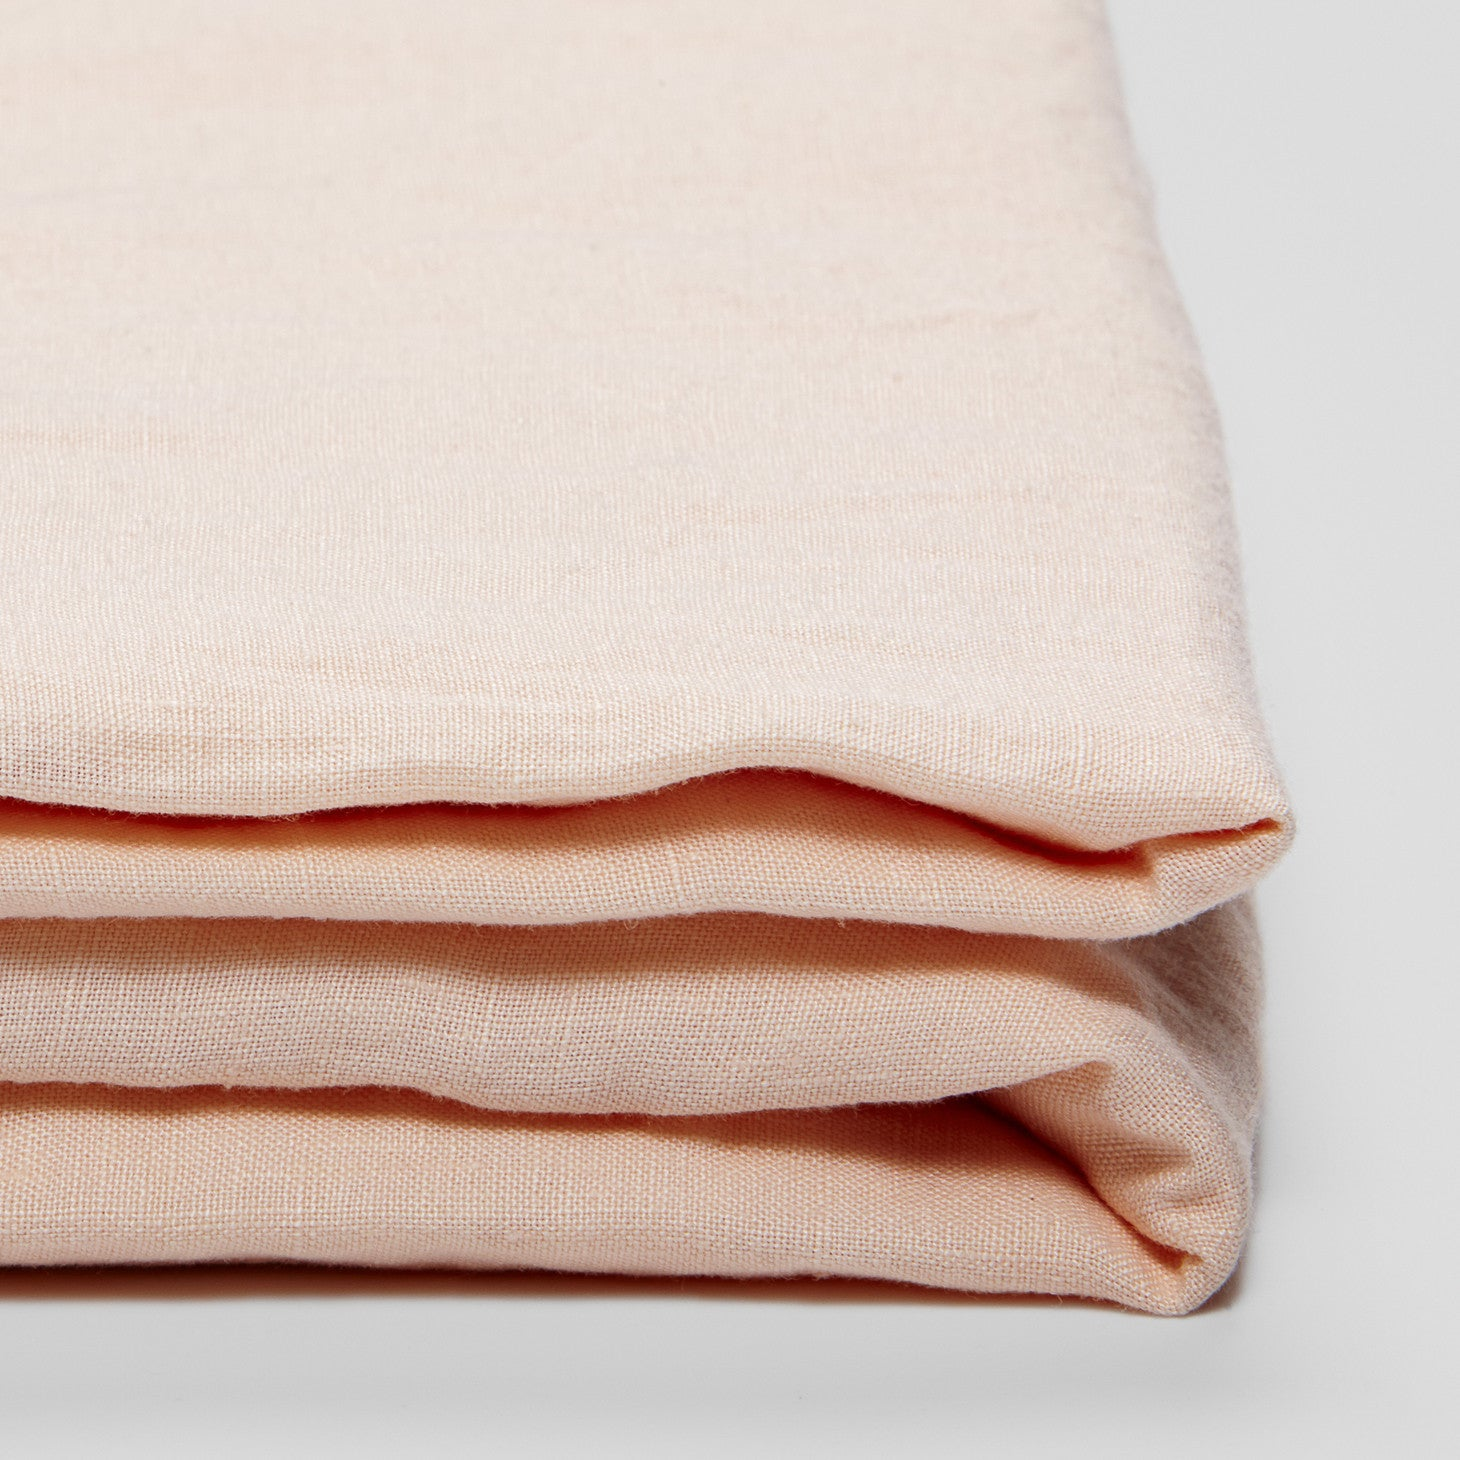 In Bed Linen Pillowslip Sets Smithmade